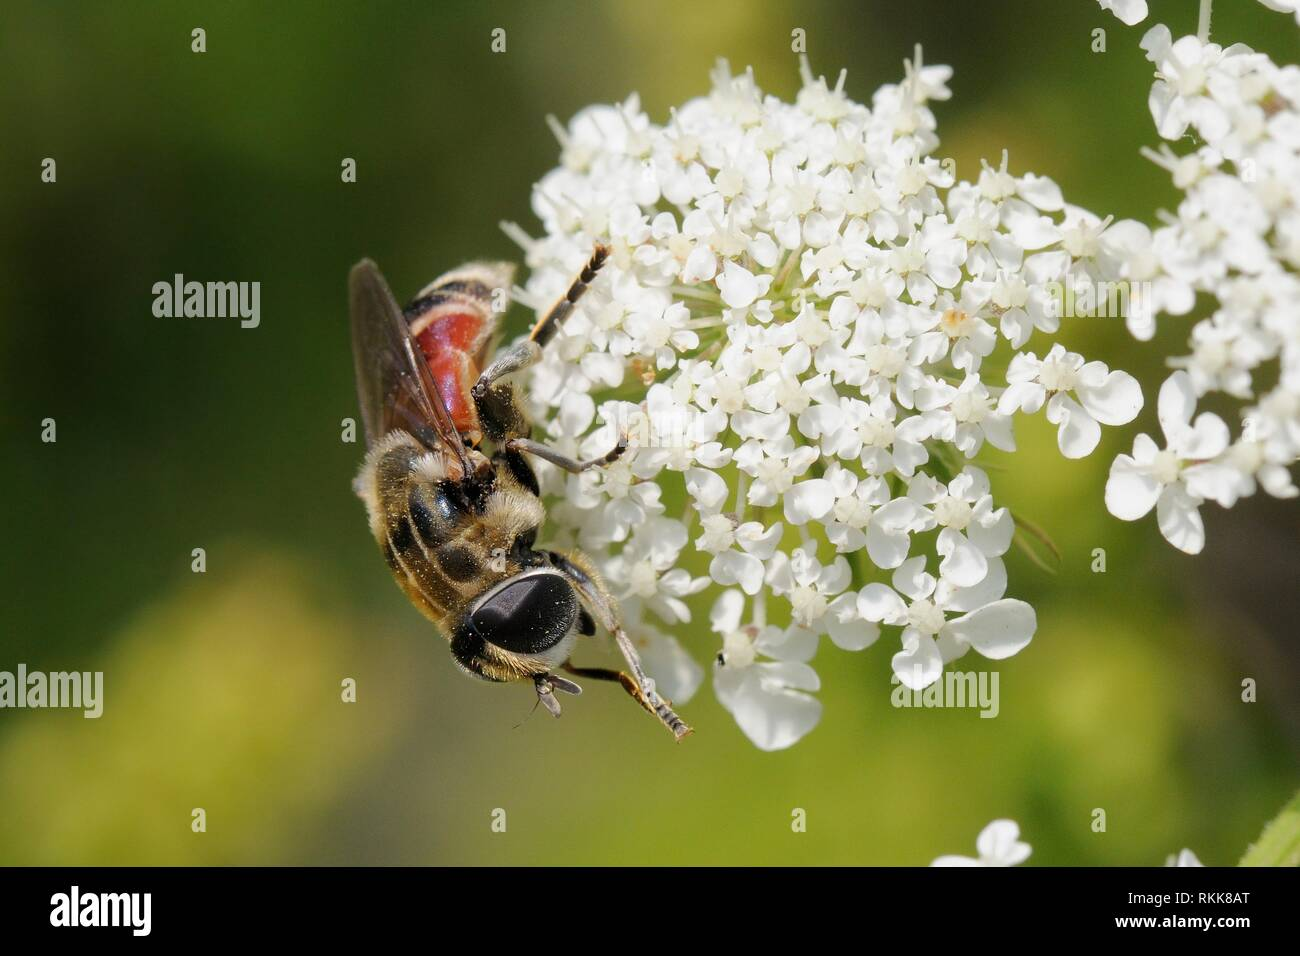 Hoverfly (Merodon avidus) feeding from Wild carrot / Queen Anne's lace (Daucus carota) flowers, Lesbos / Lesvos, Greece, May. - Stock Image